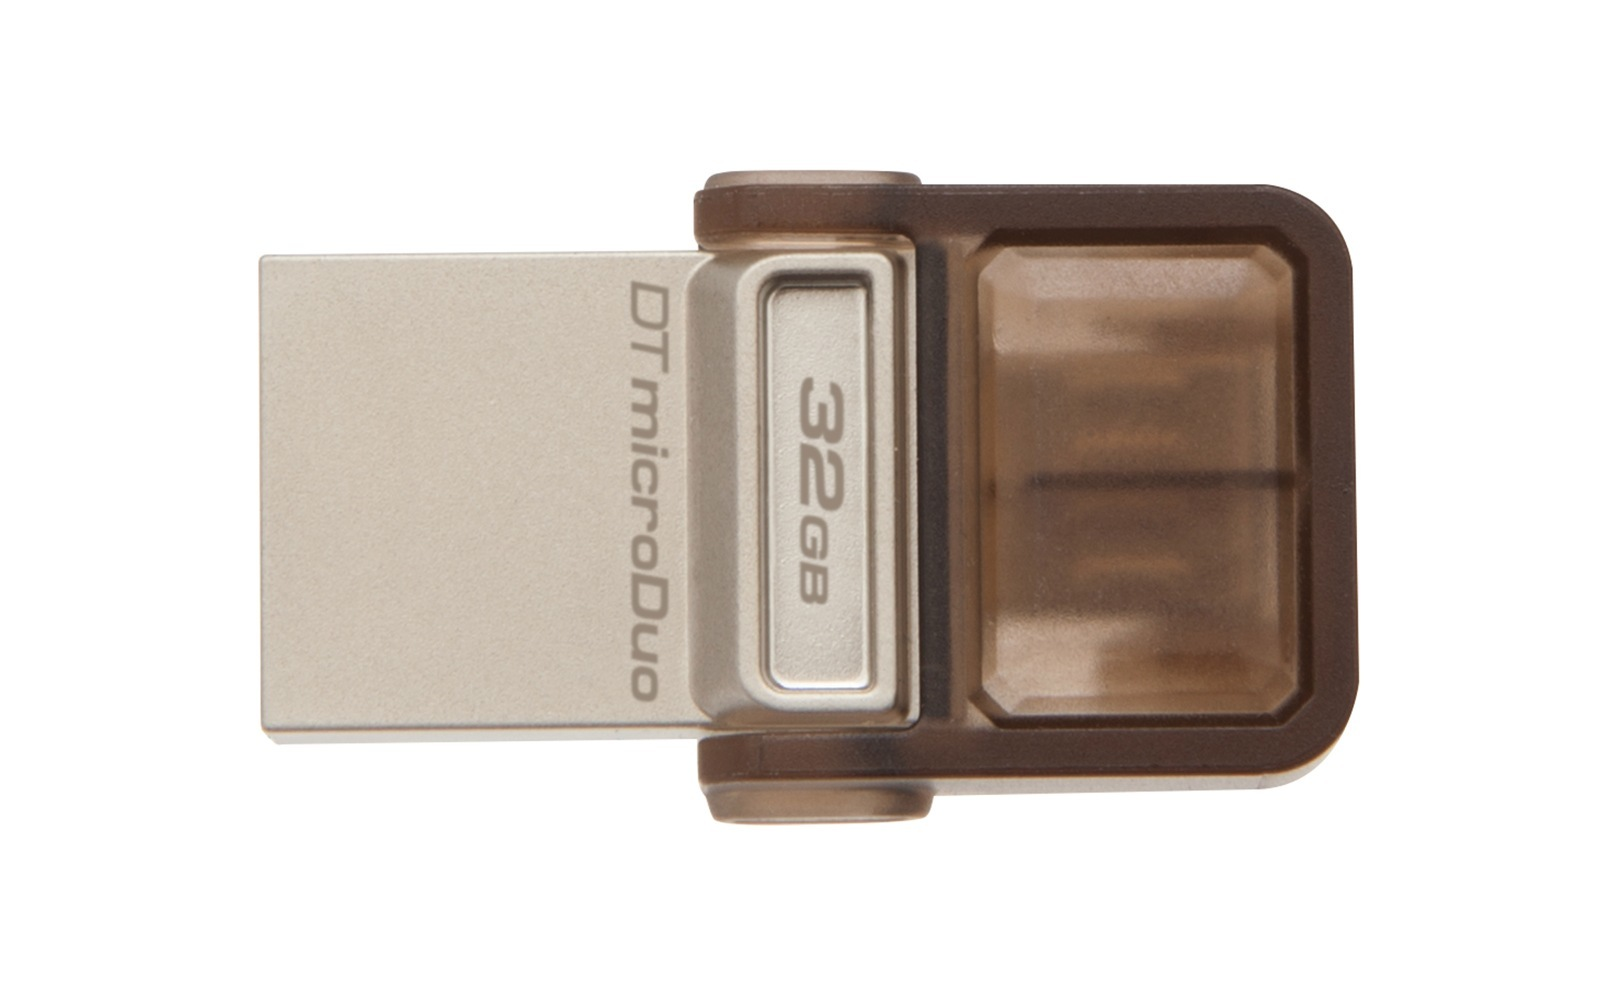 Foto de Kingston microDuo USB (4/27)